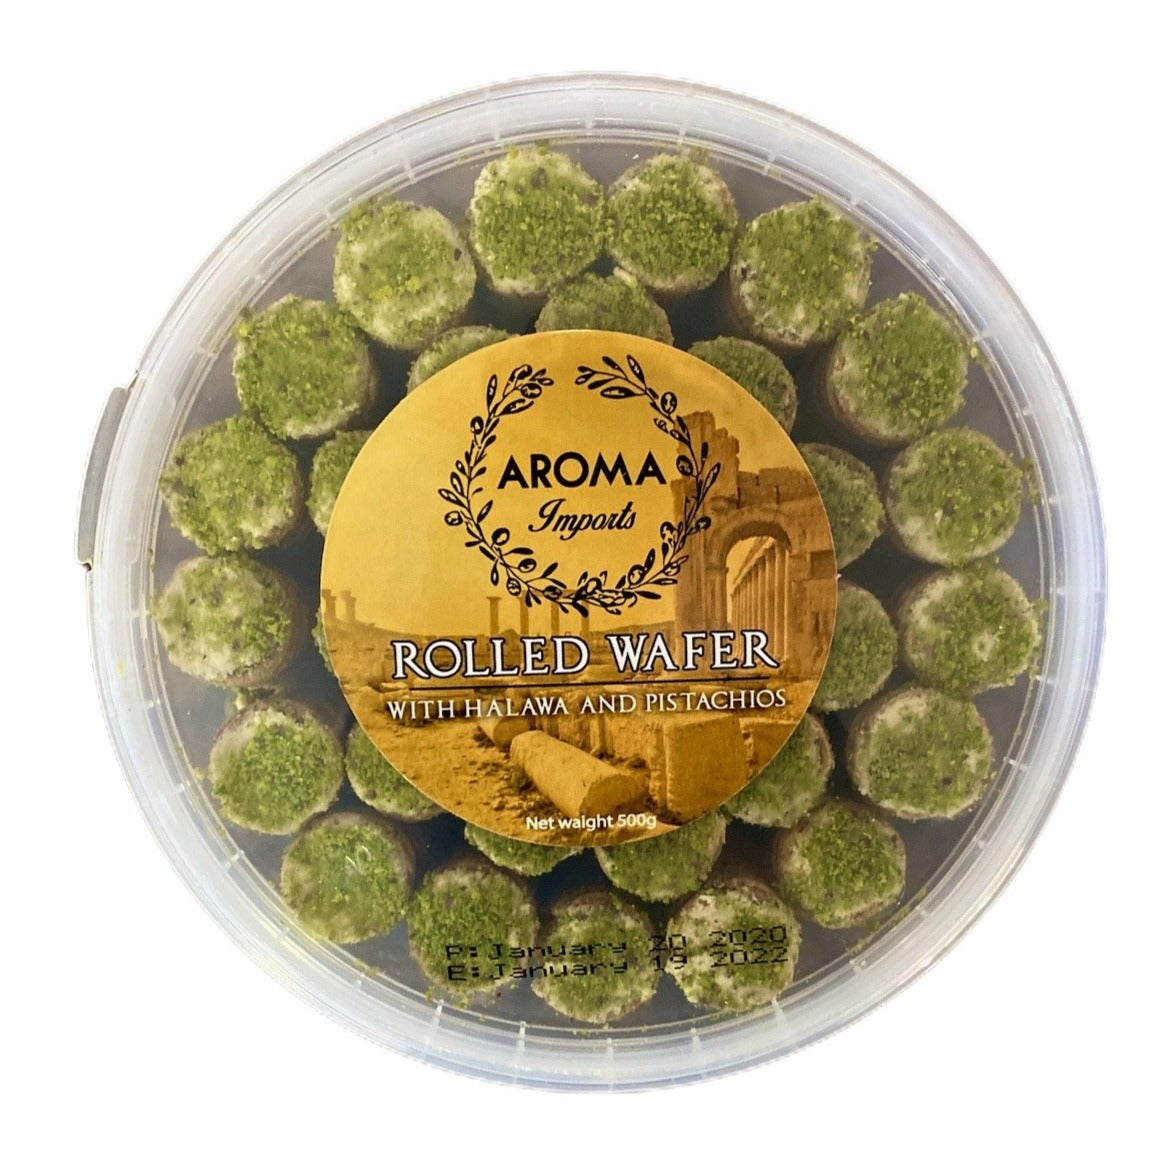 Halawa Rolled Wafer with Pistachio (500g)